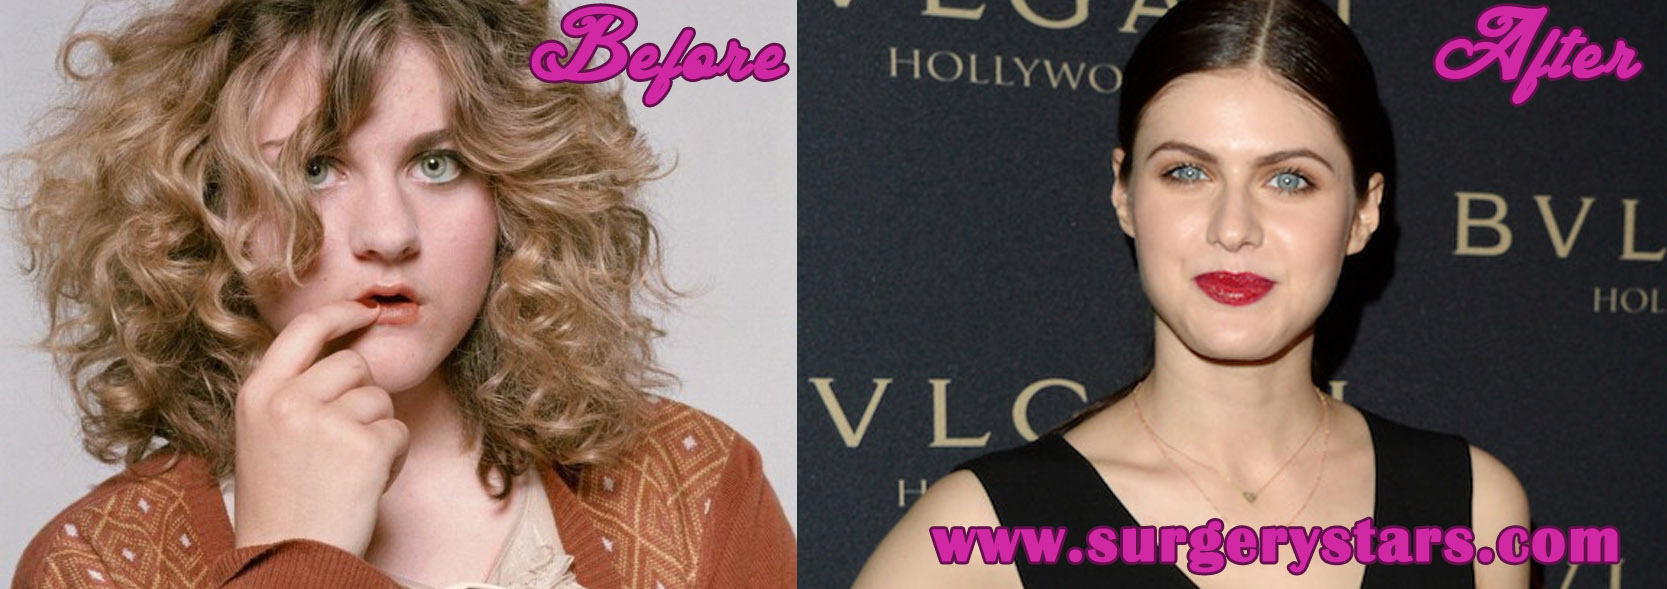 Frances Bean Cobain Weight Loss Before and After Pictures